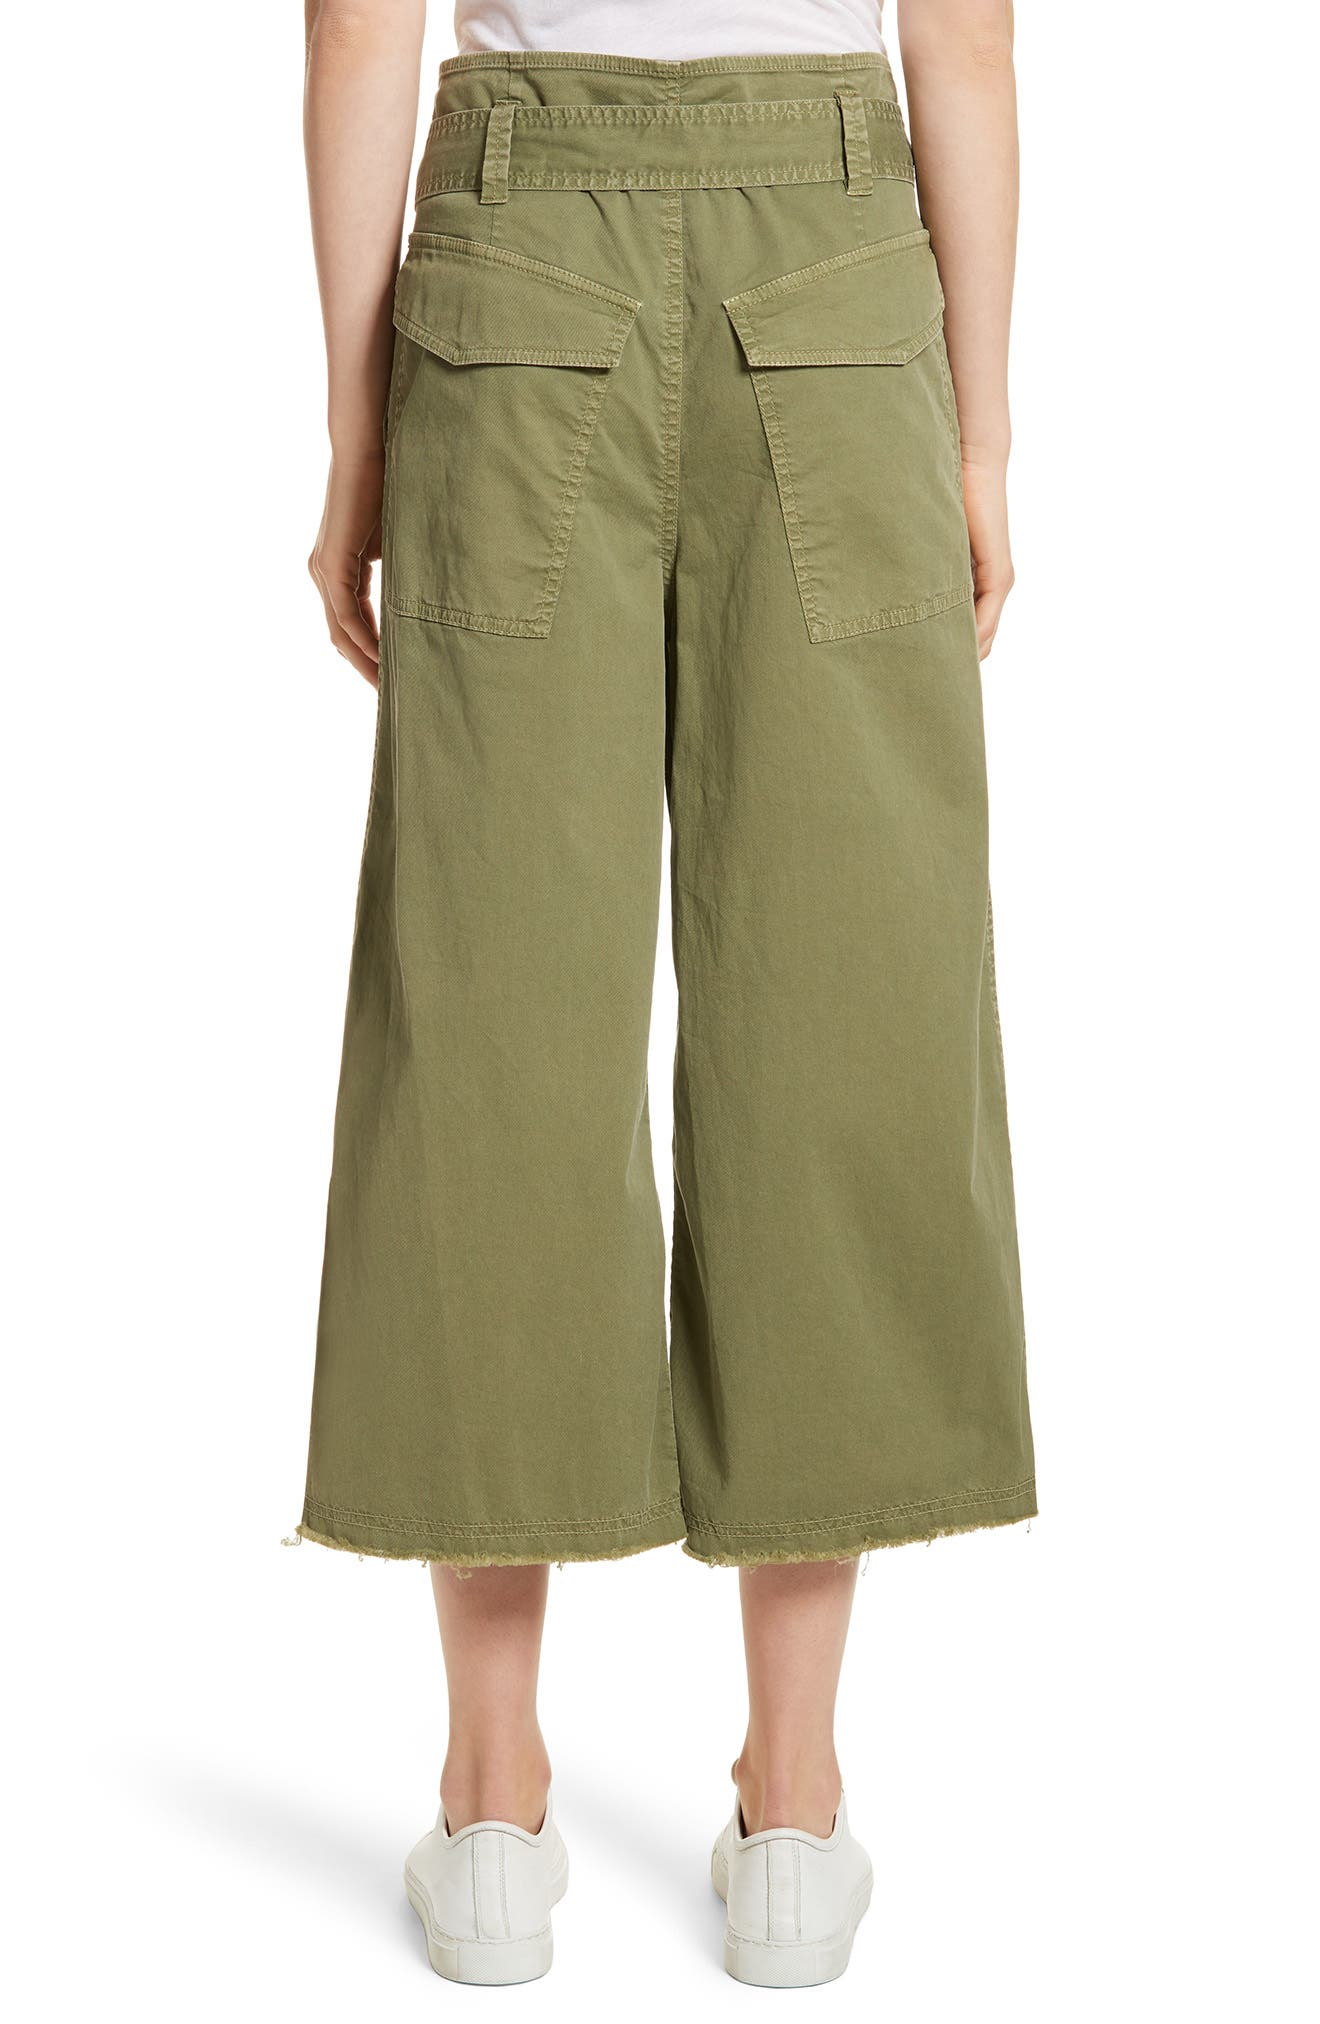 Ellie Drop Rise Culottes,                             Alternate thumbnail 2, color,                             Army Green